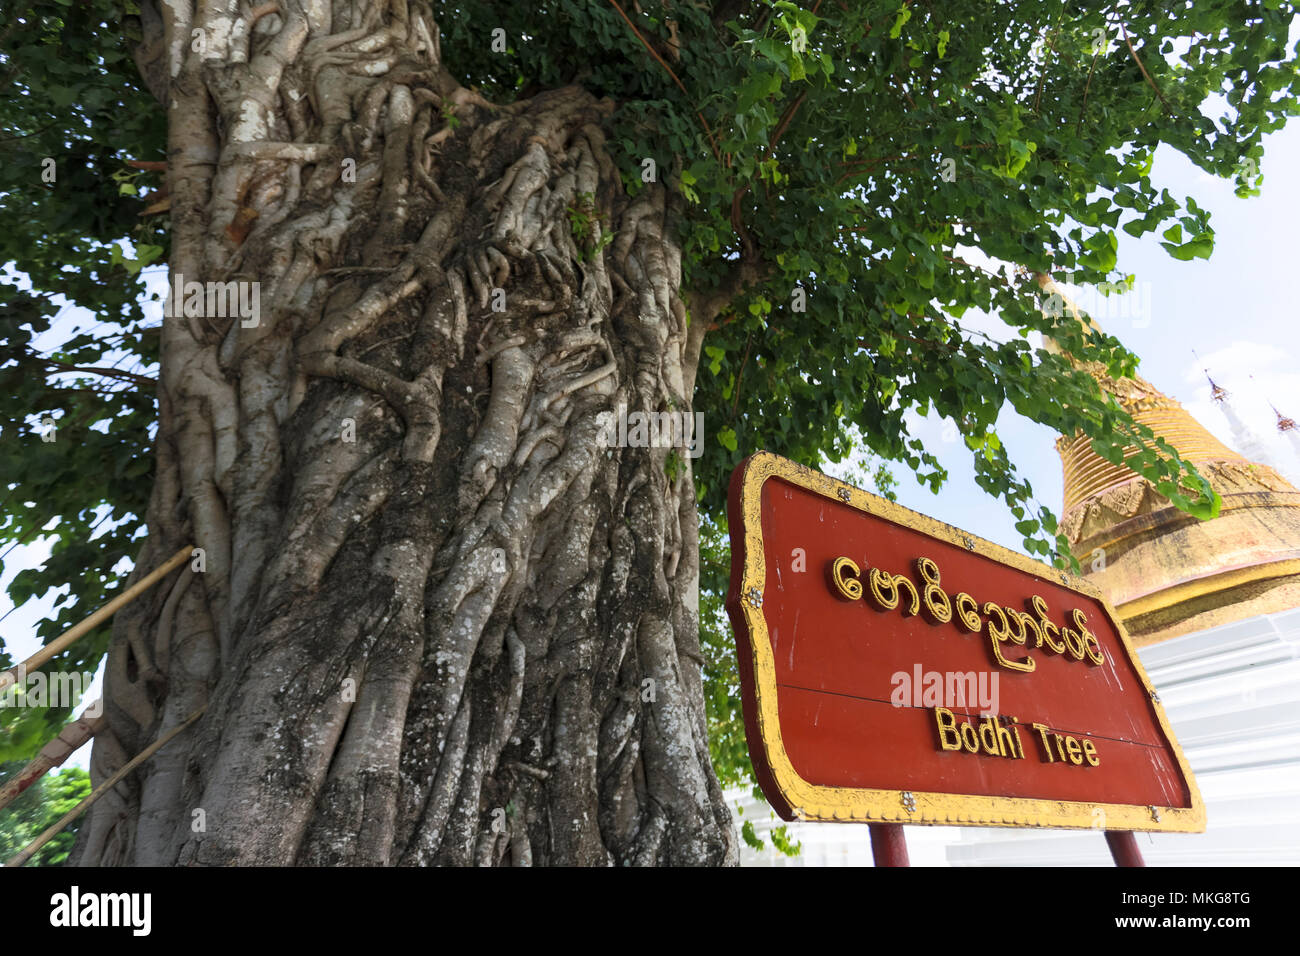 Bodhi tree and sign at Shwedagon Pagoda travel attraction in city of Yangon Myanmar Asia Stock Photo